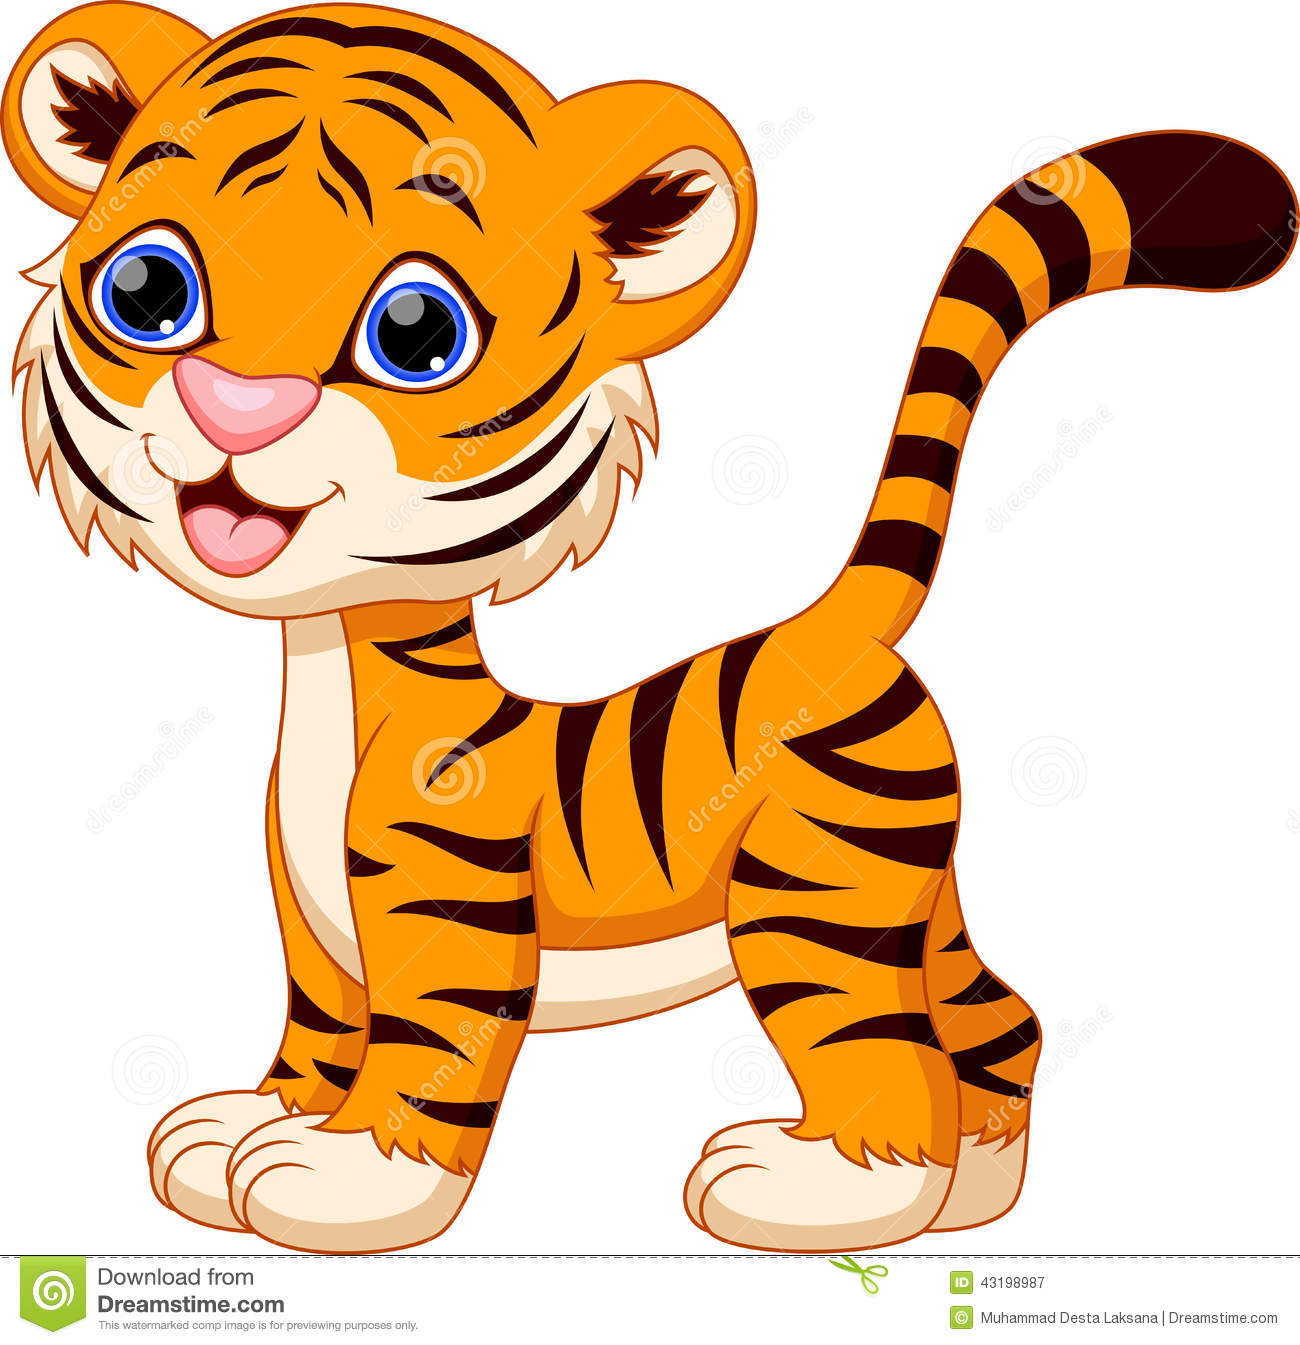 Cute tiger cartoon stock illustration. Image of cute ...